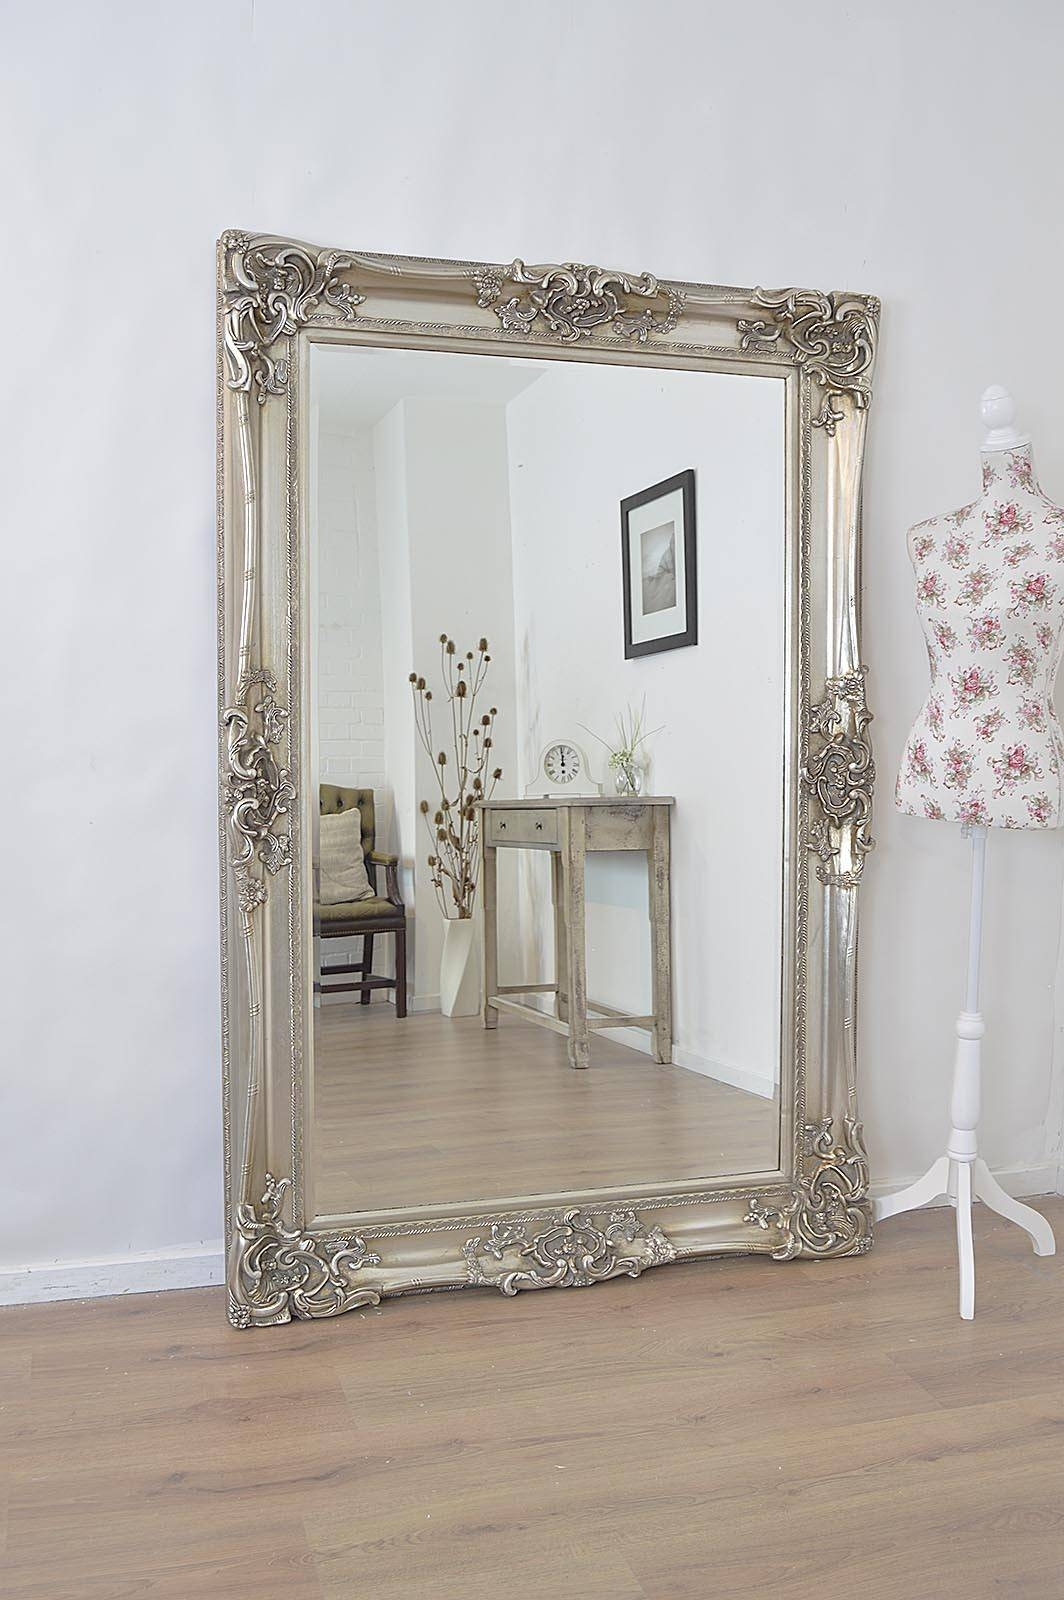 Exceptional Antique Wall Mirror Styles Plus Large Black Framed pertaining to Large Black Vintage Mirrors (Image 2 of 15)